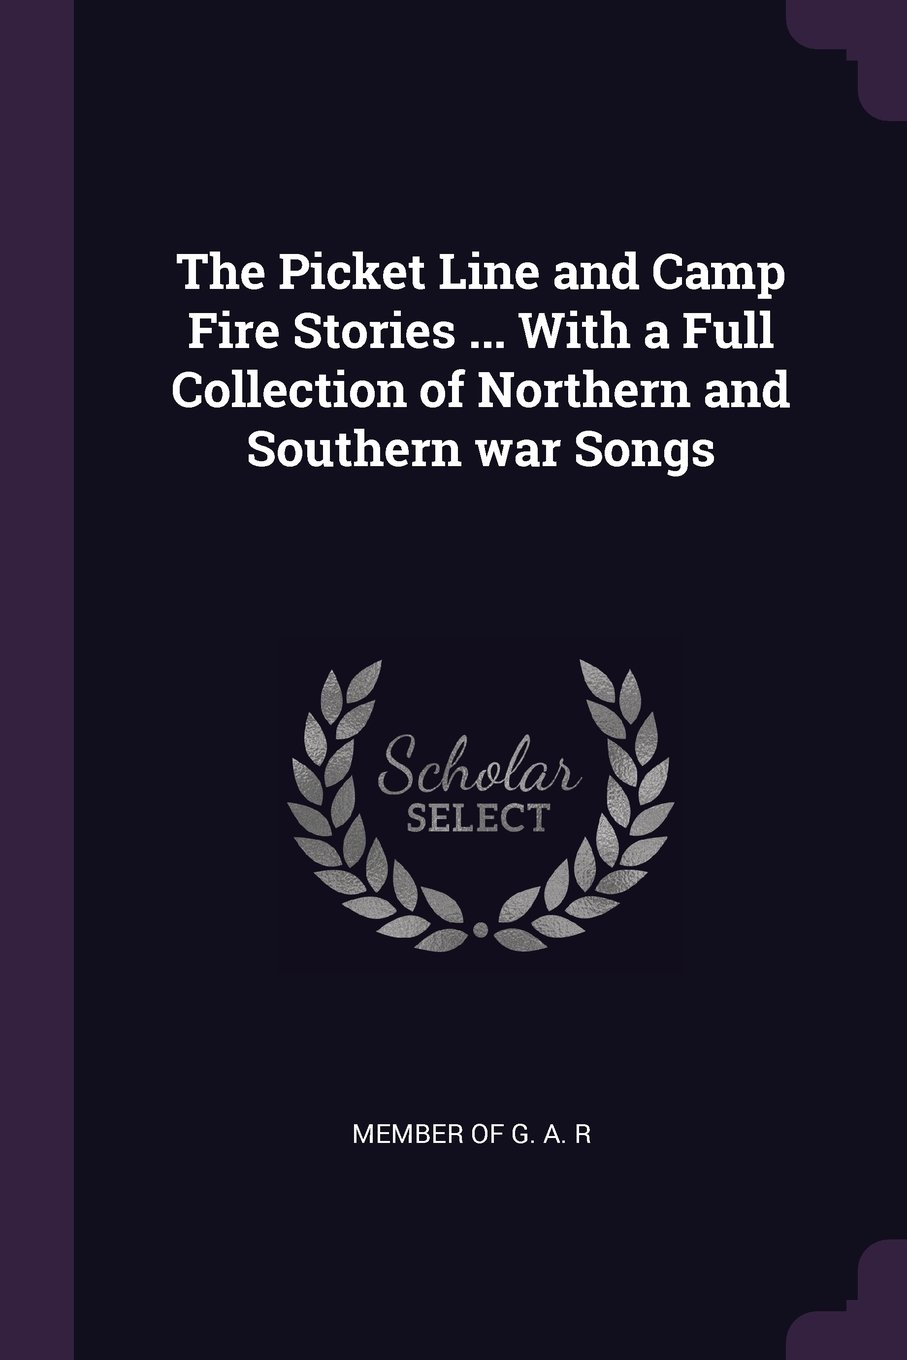 Download The Picket Line and Camp Fire Stories ... With a Full Collection of Northern and Southern war Songs ebook